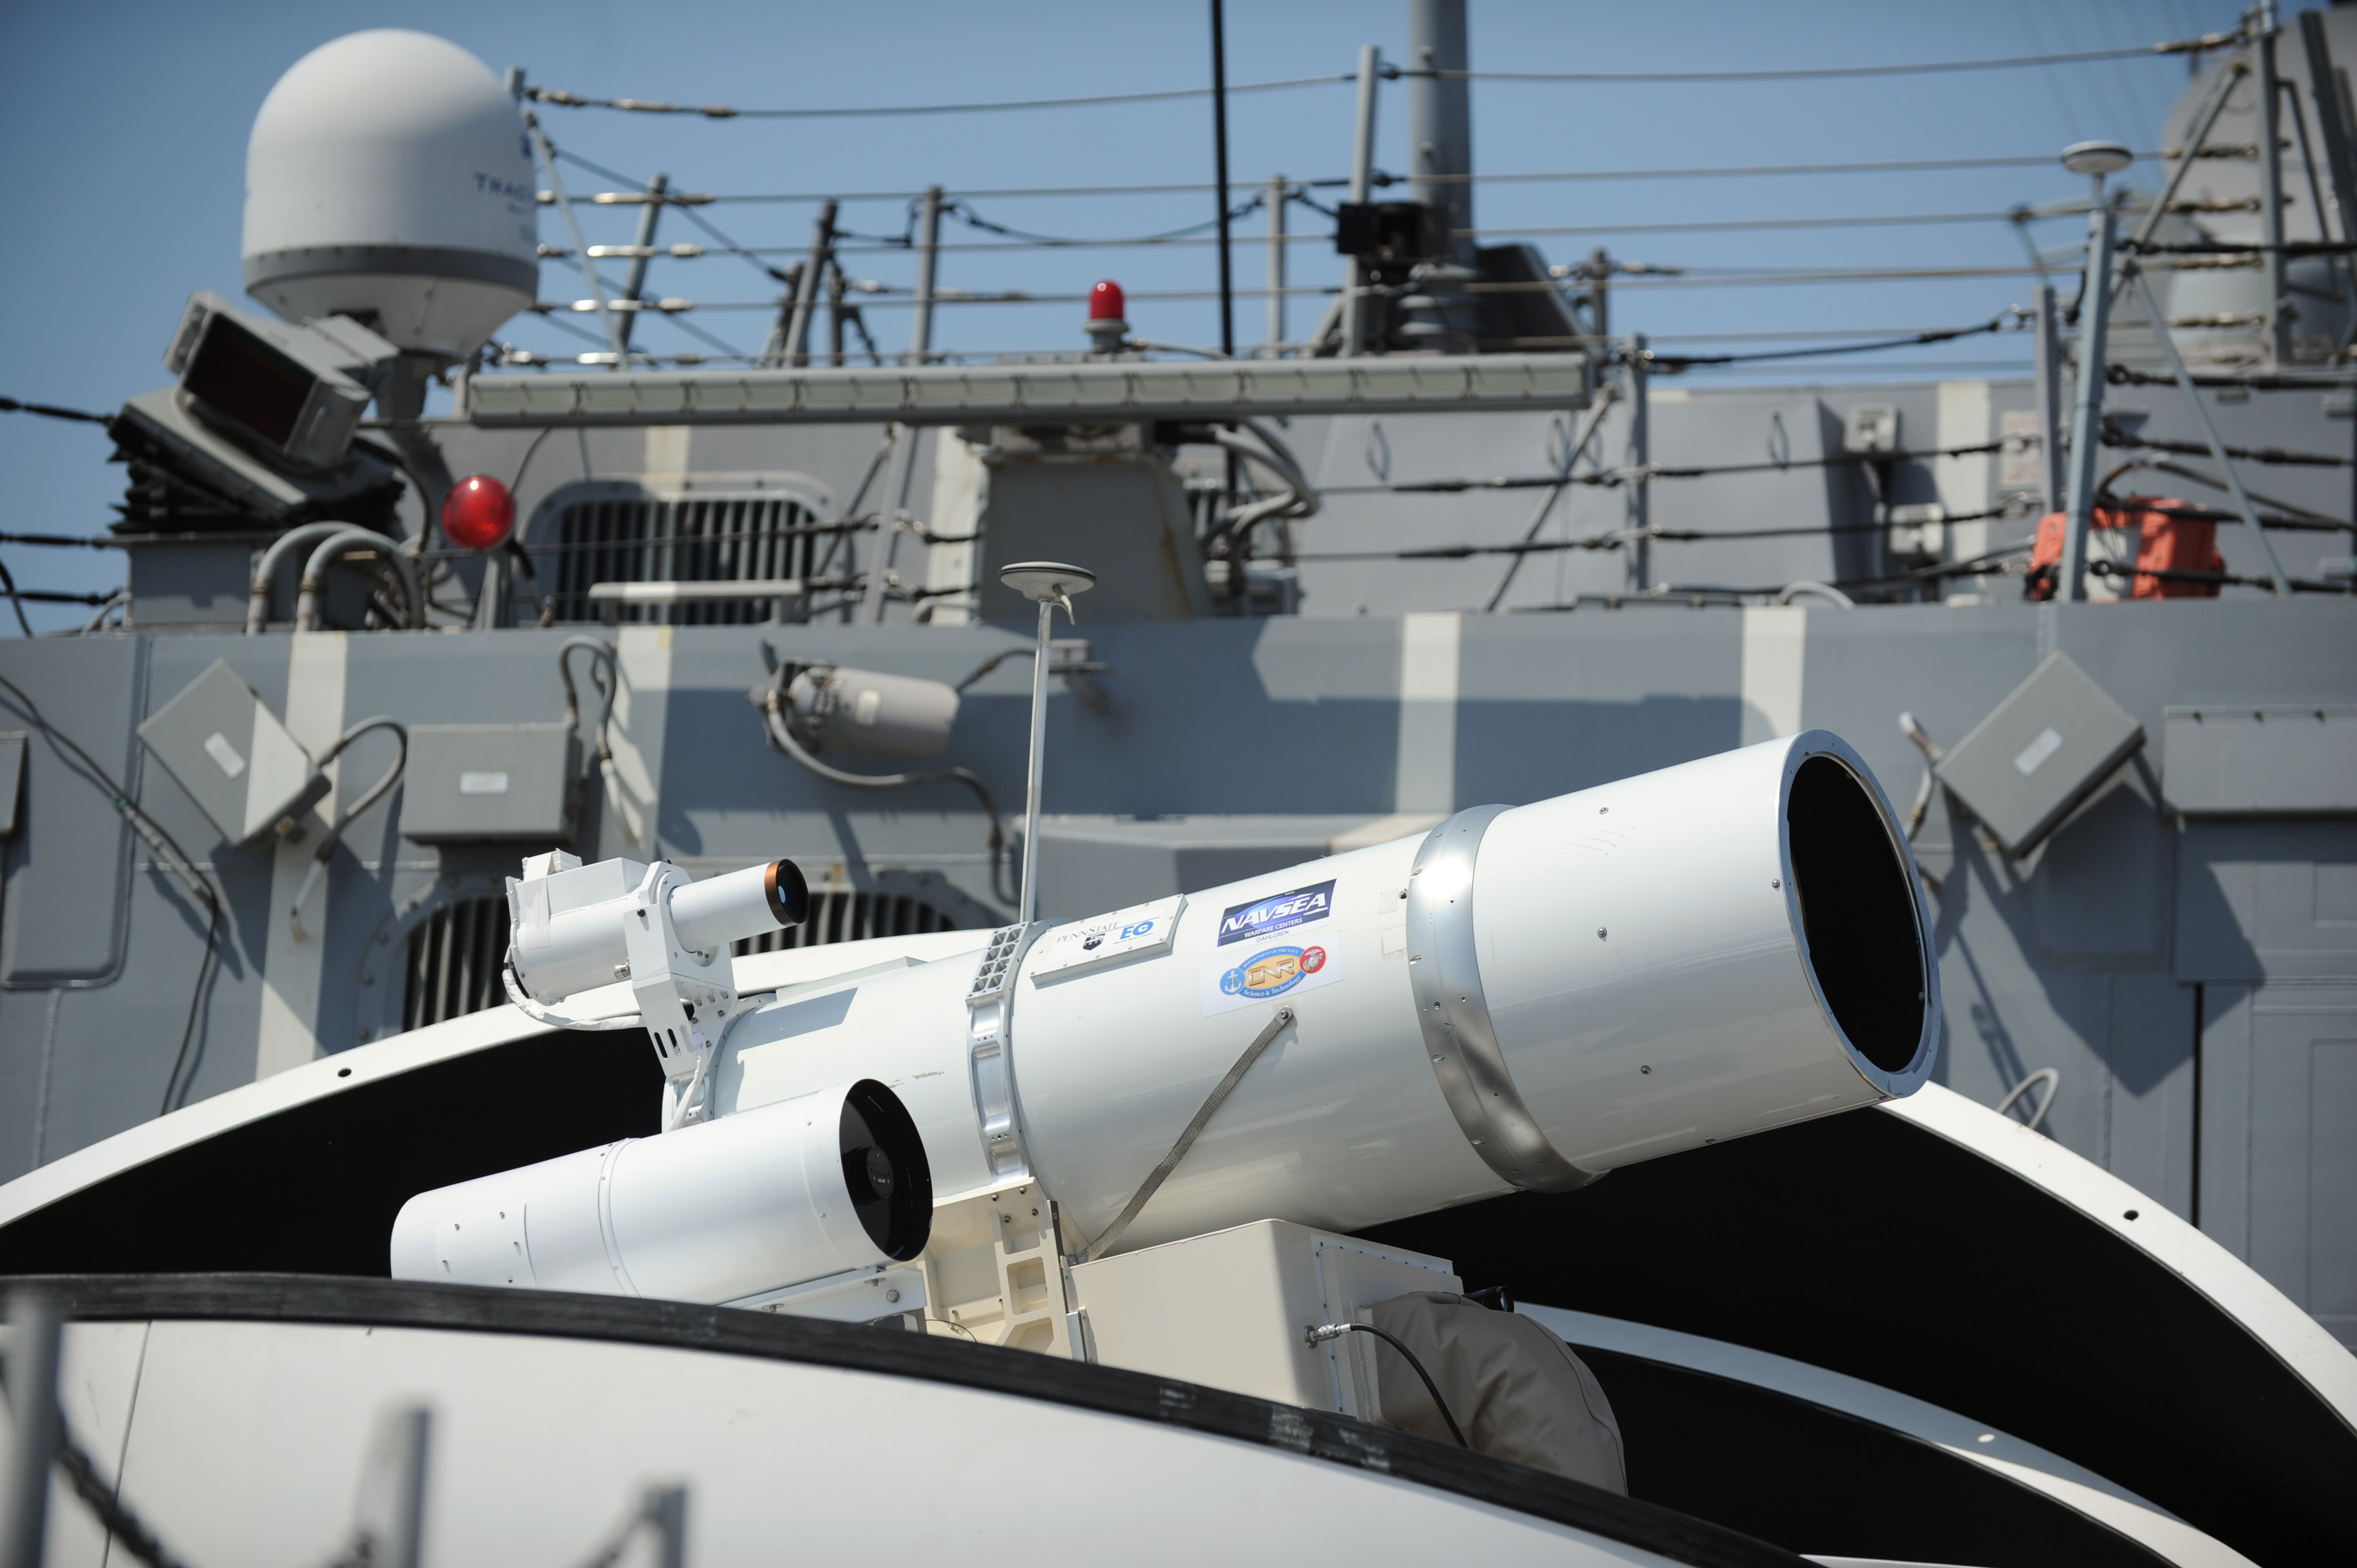 U.S, Navy LAWS laser weapon system